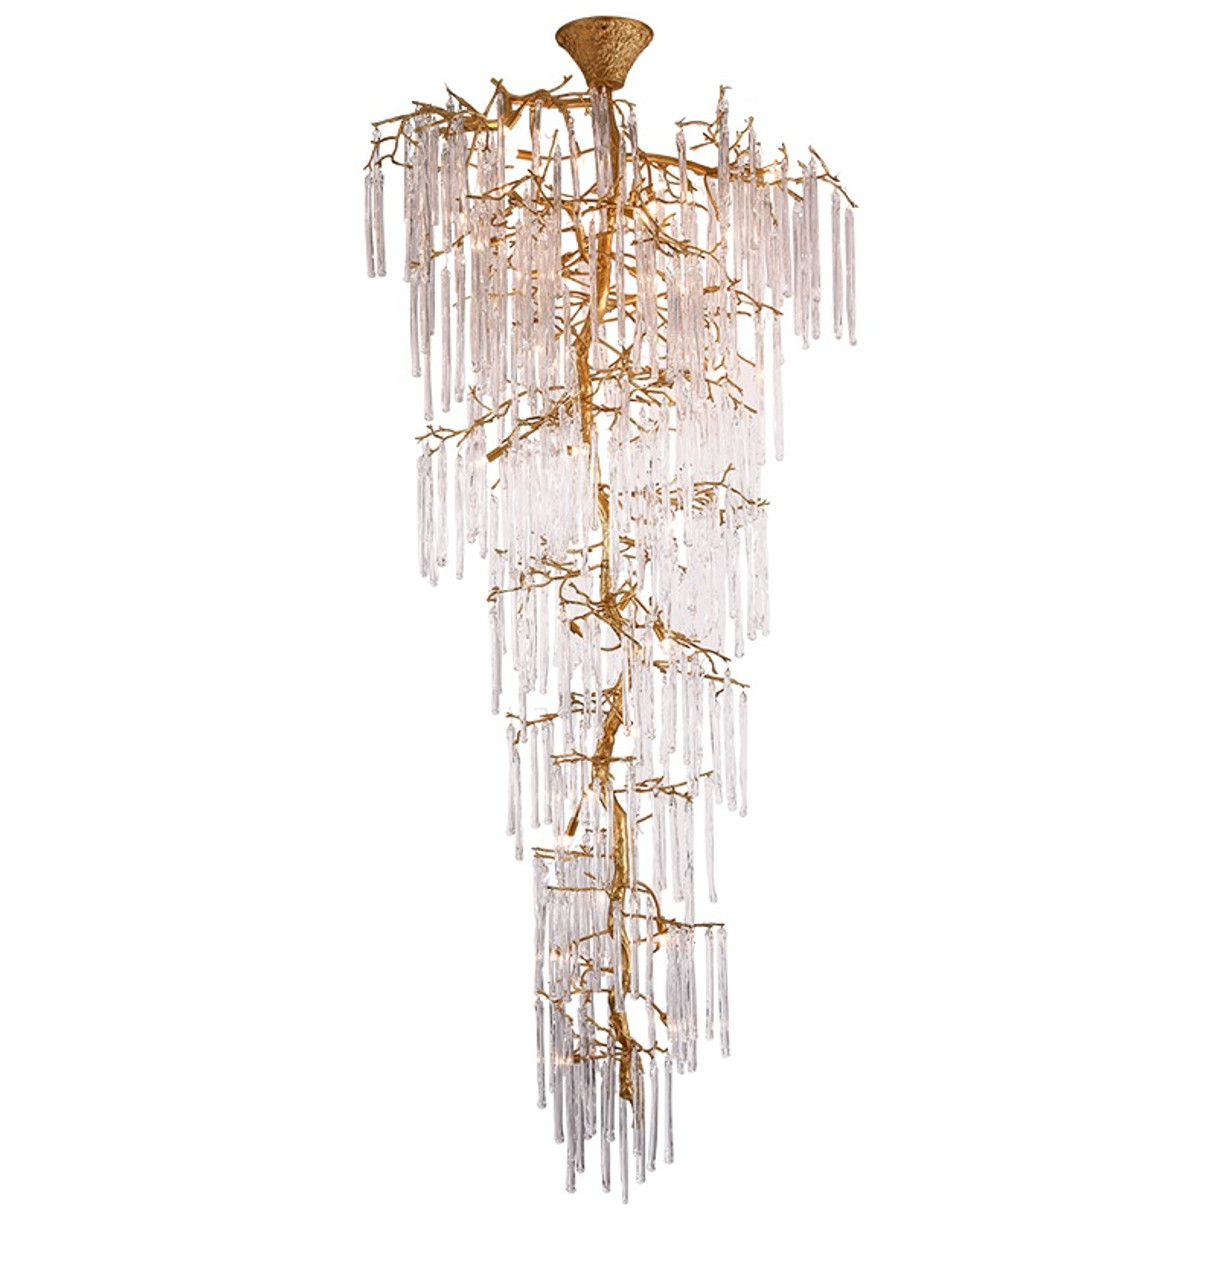 Amelie Copper Crystal Branch Staircase Luxury Hotel Chandelier